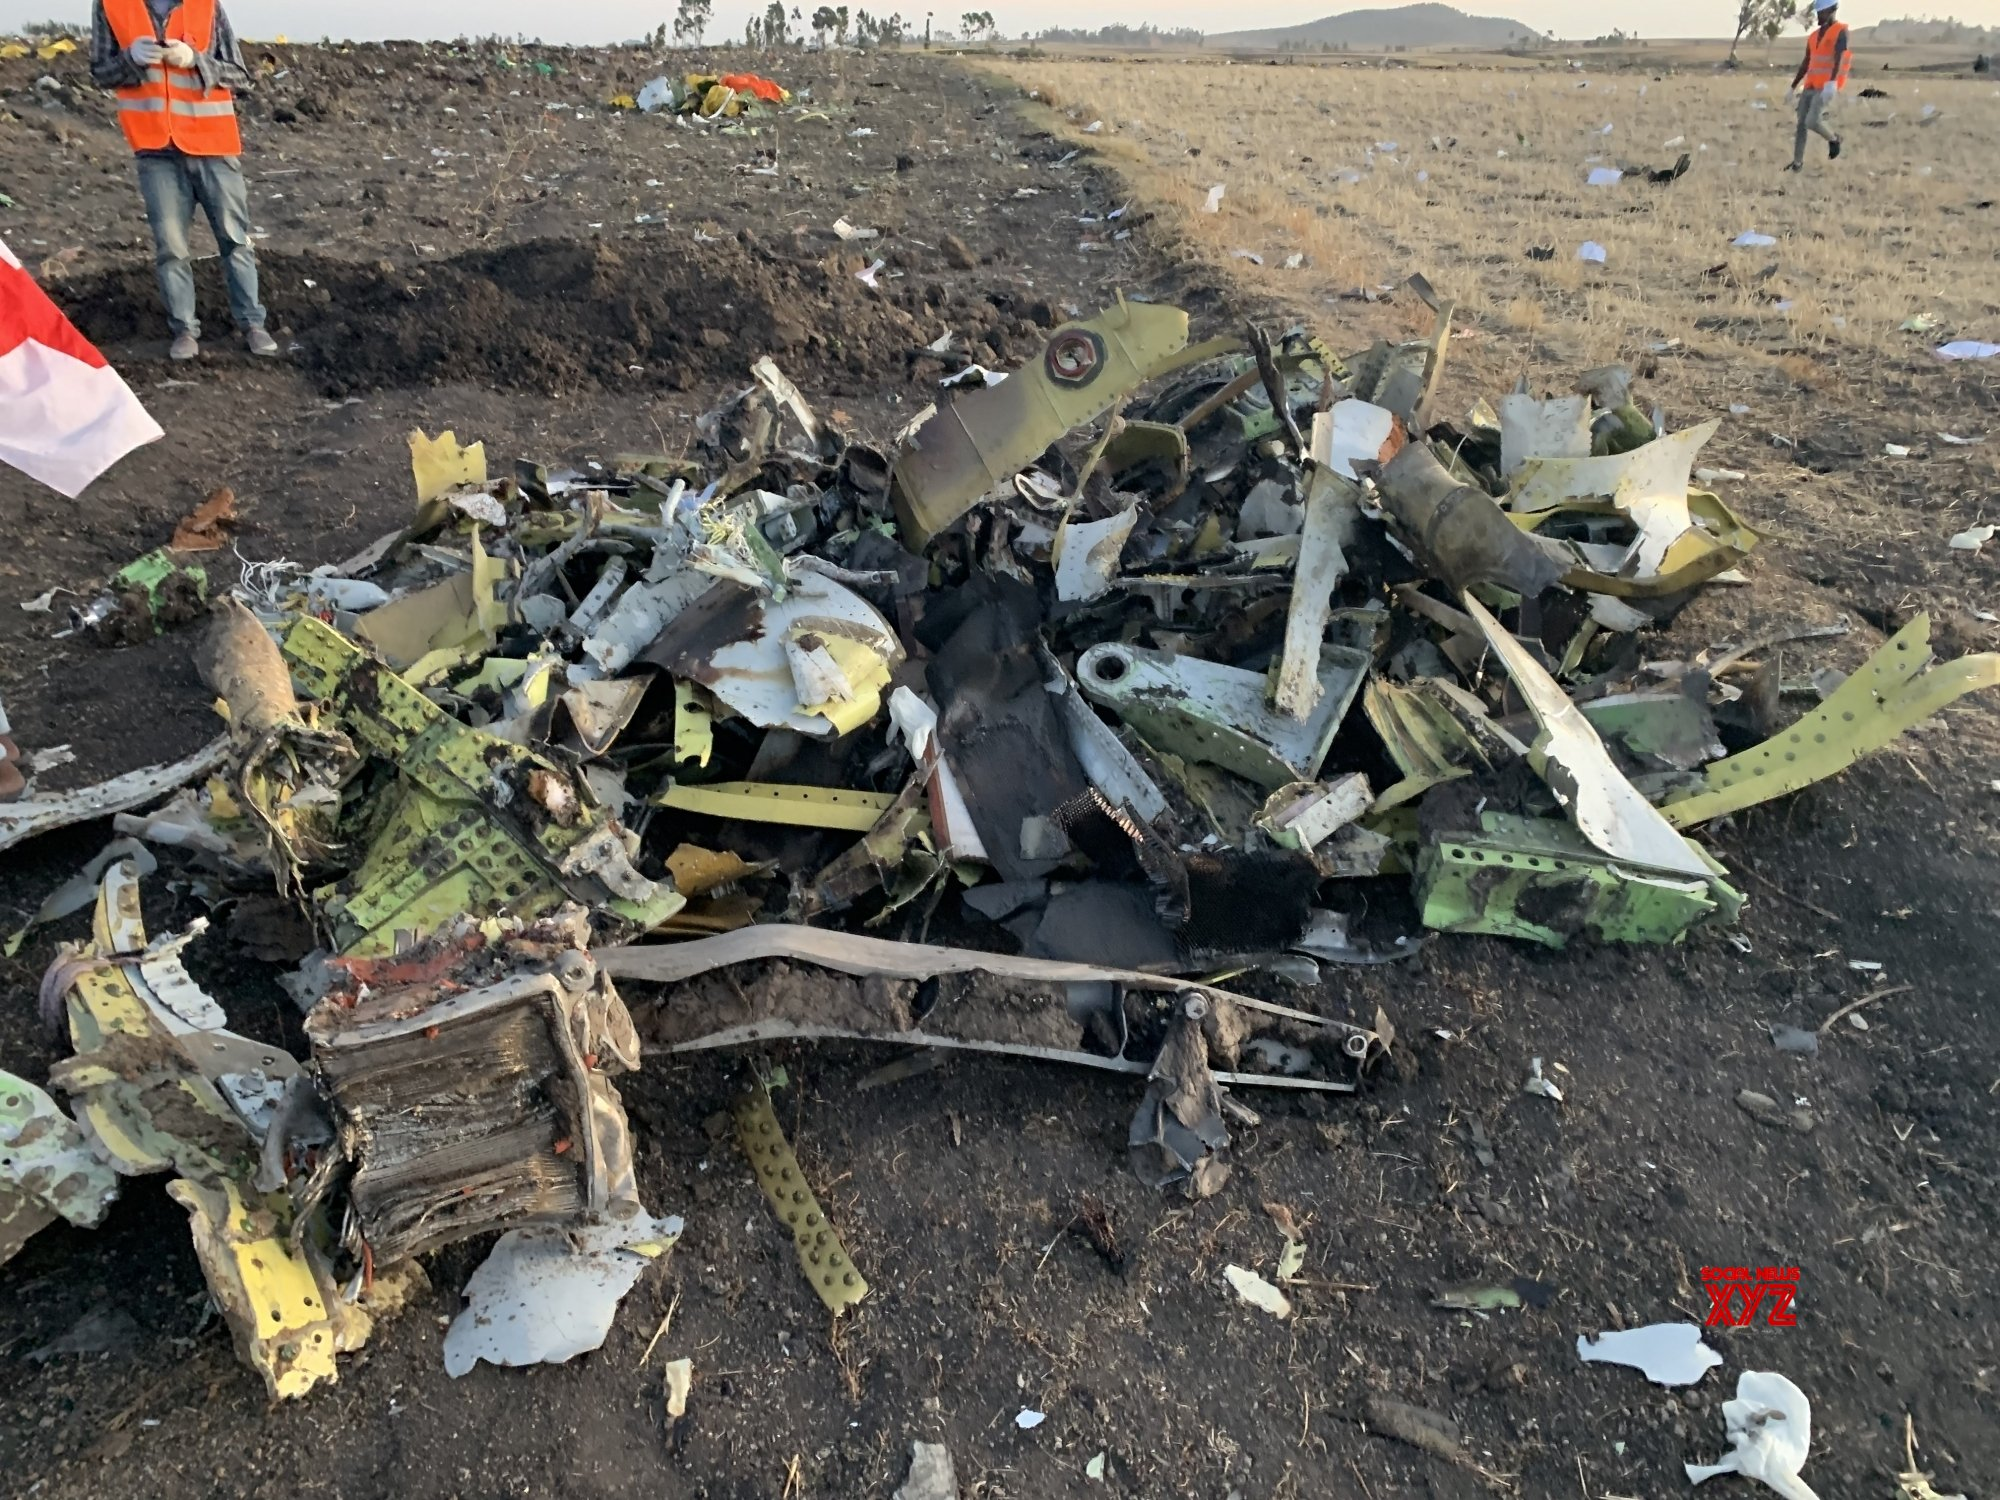 Indian-origin man loses 6 of family in Ethiopia air crash